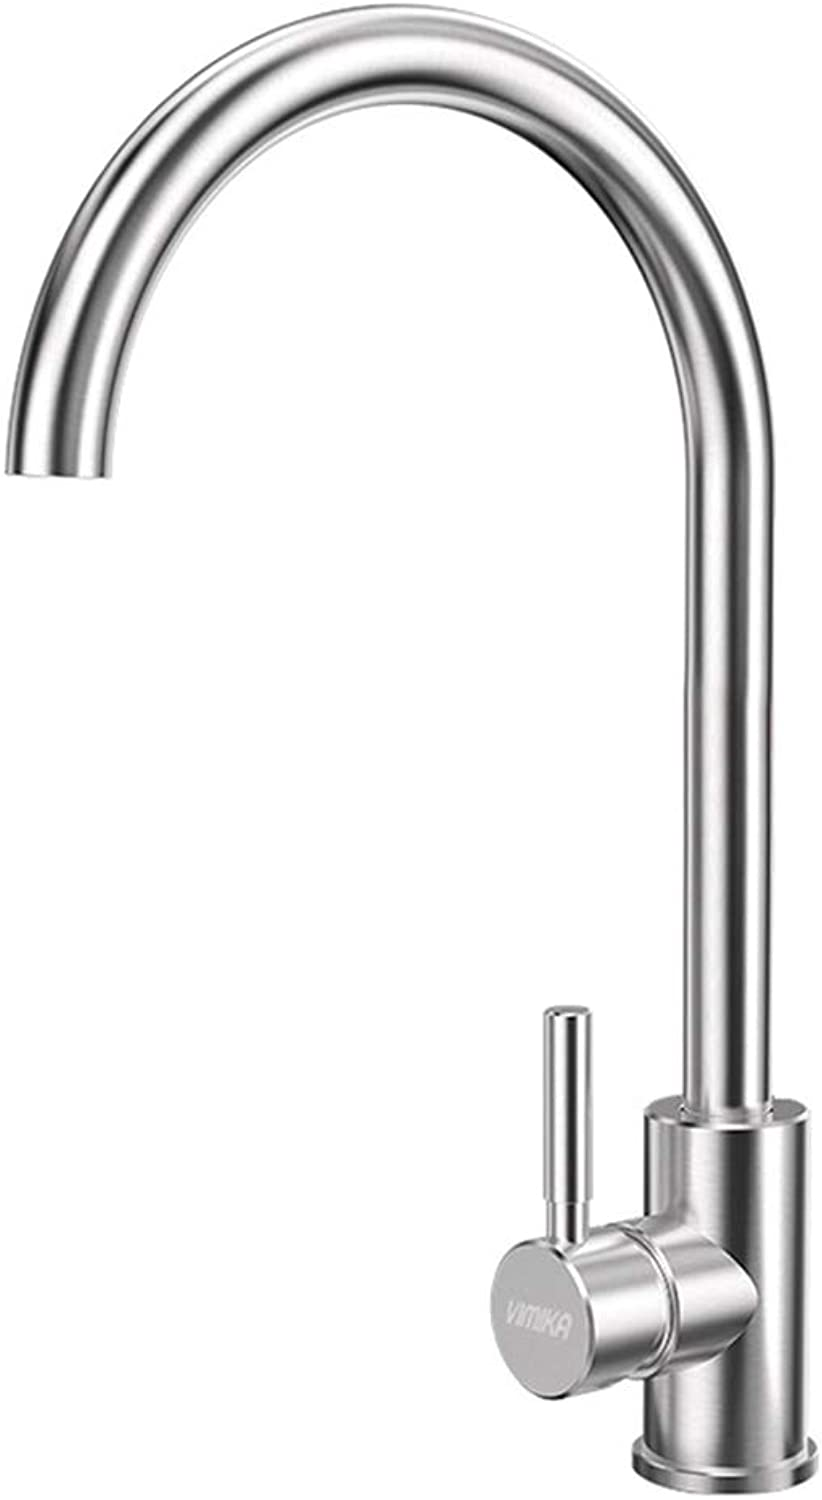 Kitchen Sink Basin Mixer Tap, 360 Degree redation Single Holder Kitchen Sink Tap for Kitchen Bathroom, for Hot and Cold Water, Chrome 304 Stainless Steel